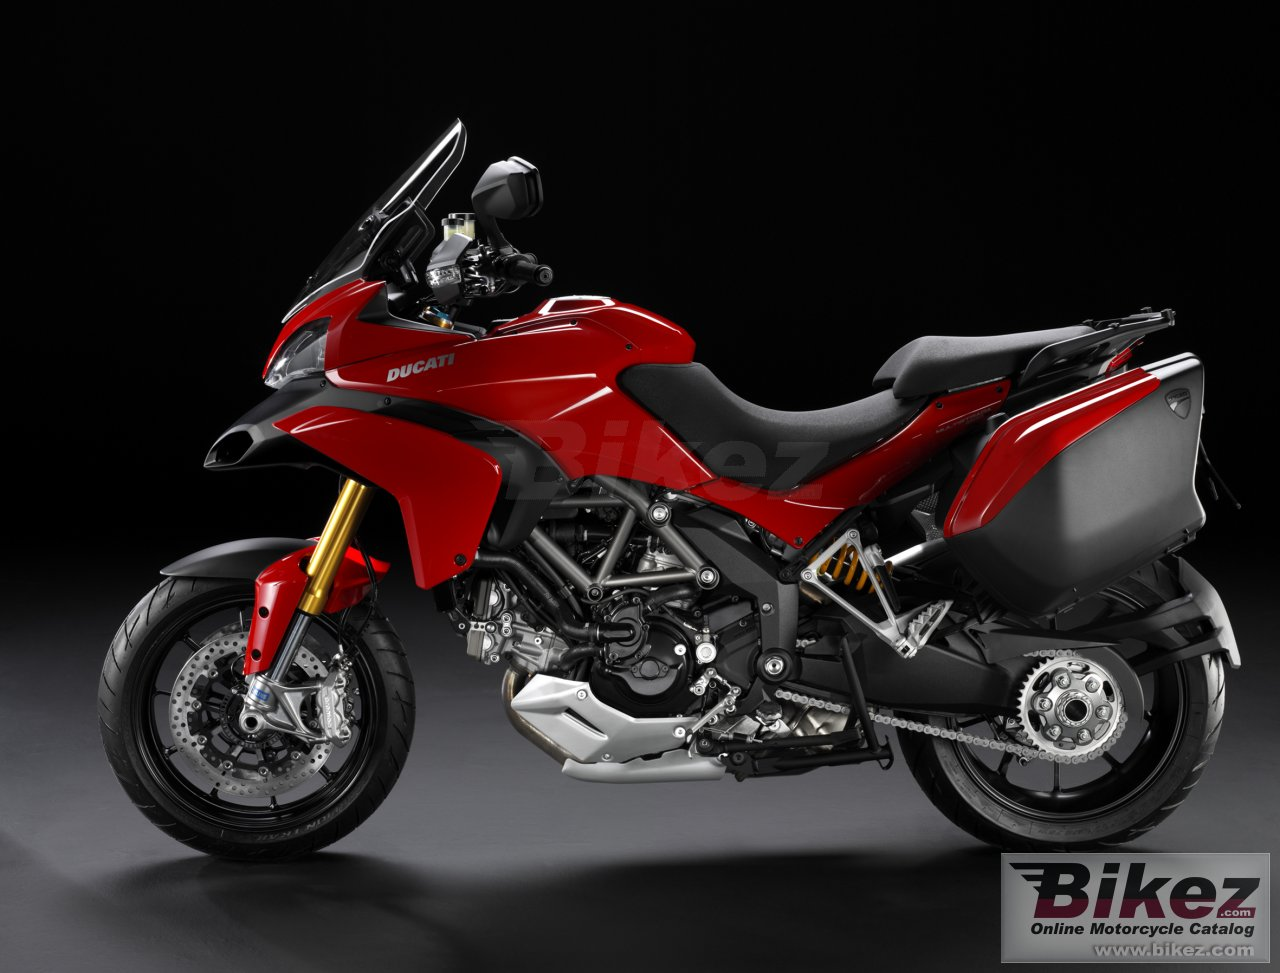 Big Ducati multistrada 1200 s touring picture and wallpaper from Bikez.com